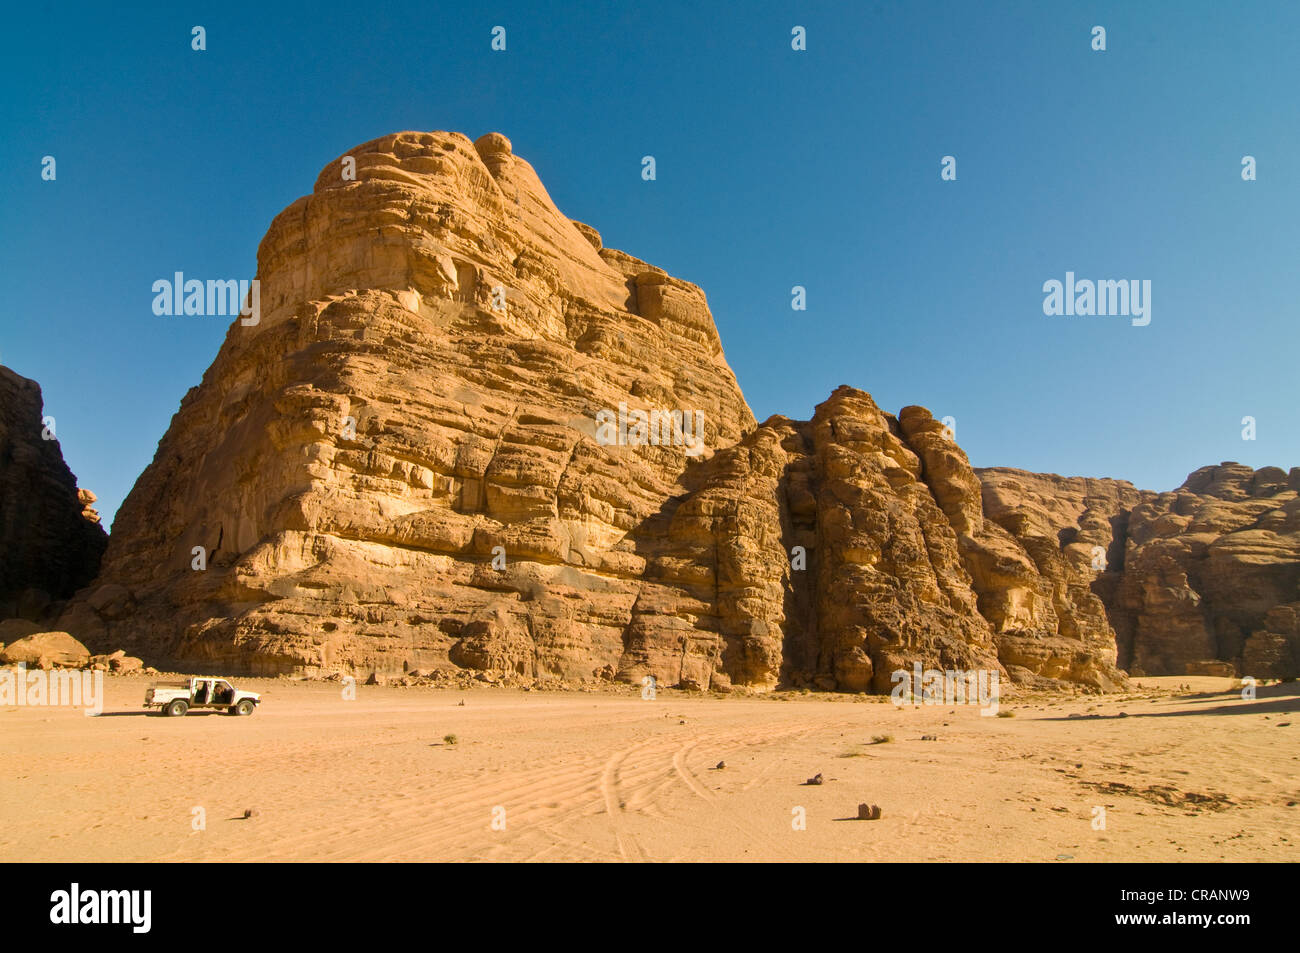 Rocks, an off-road vehicle in front, desert, Wadi Rum, Jordan, Middle East - Stock Image